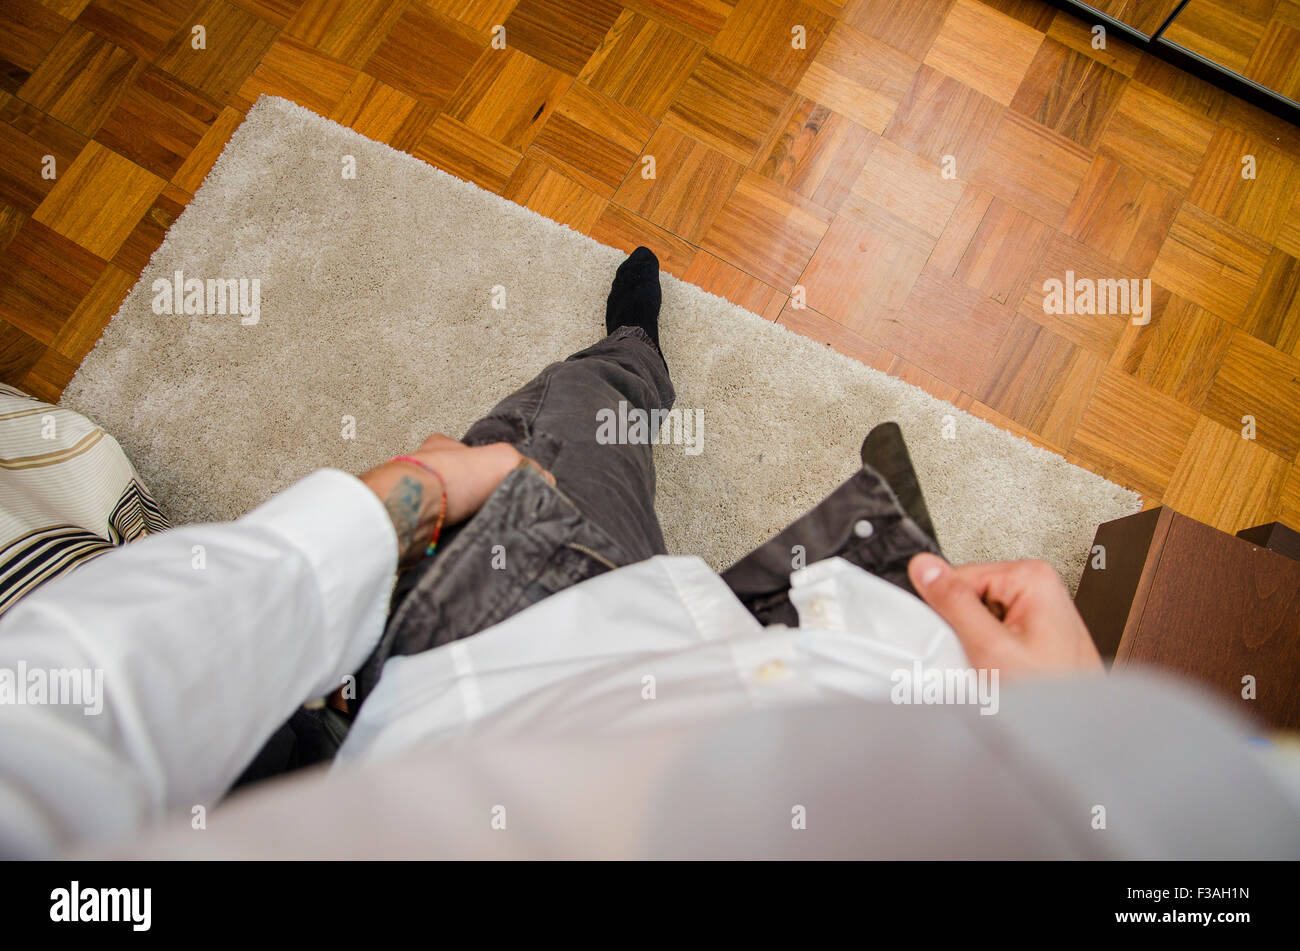 Man dressing standing in bedroom, dressing, putting pants on, first person point of view. Self POV - Stock Image